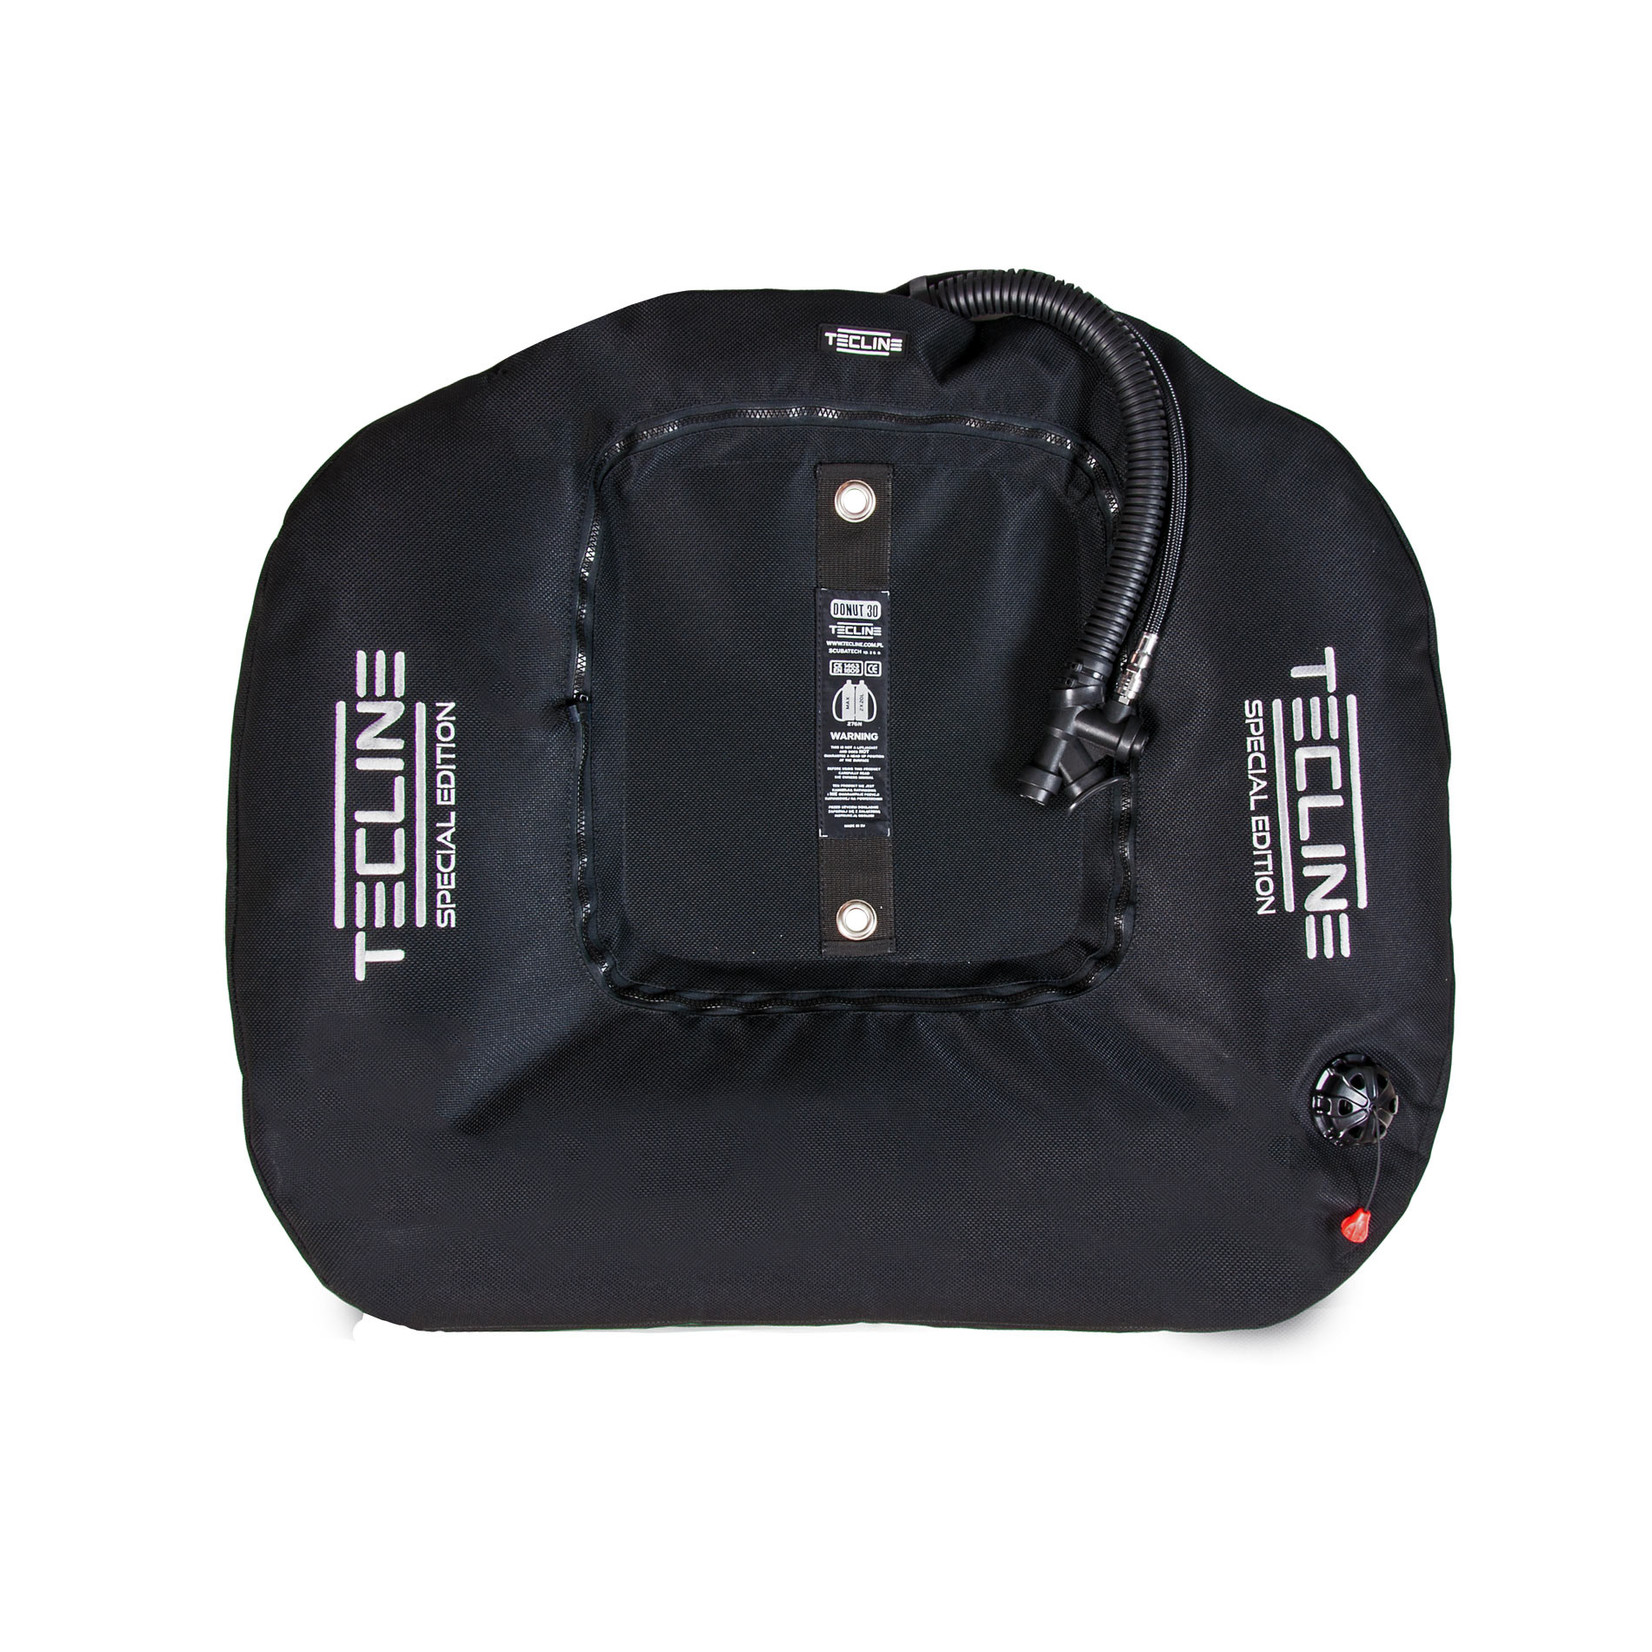 Tecline Donut 30 Special Edition, black (30kg/68lbs) for 2 x 18L